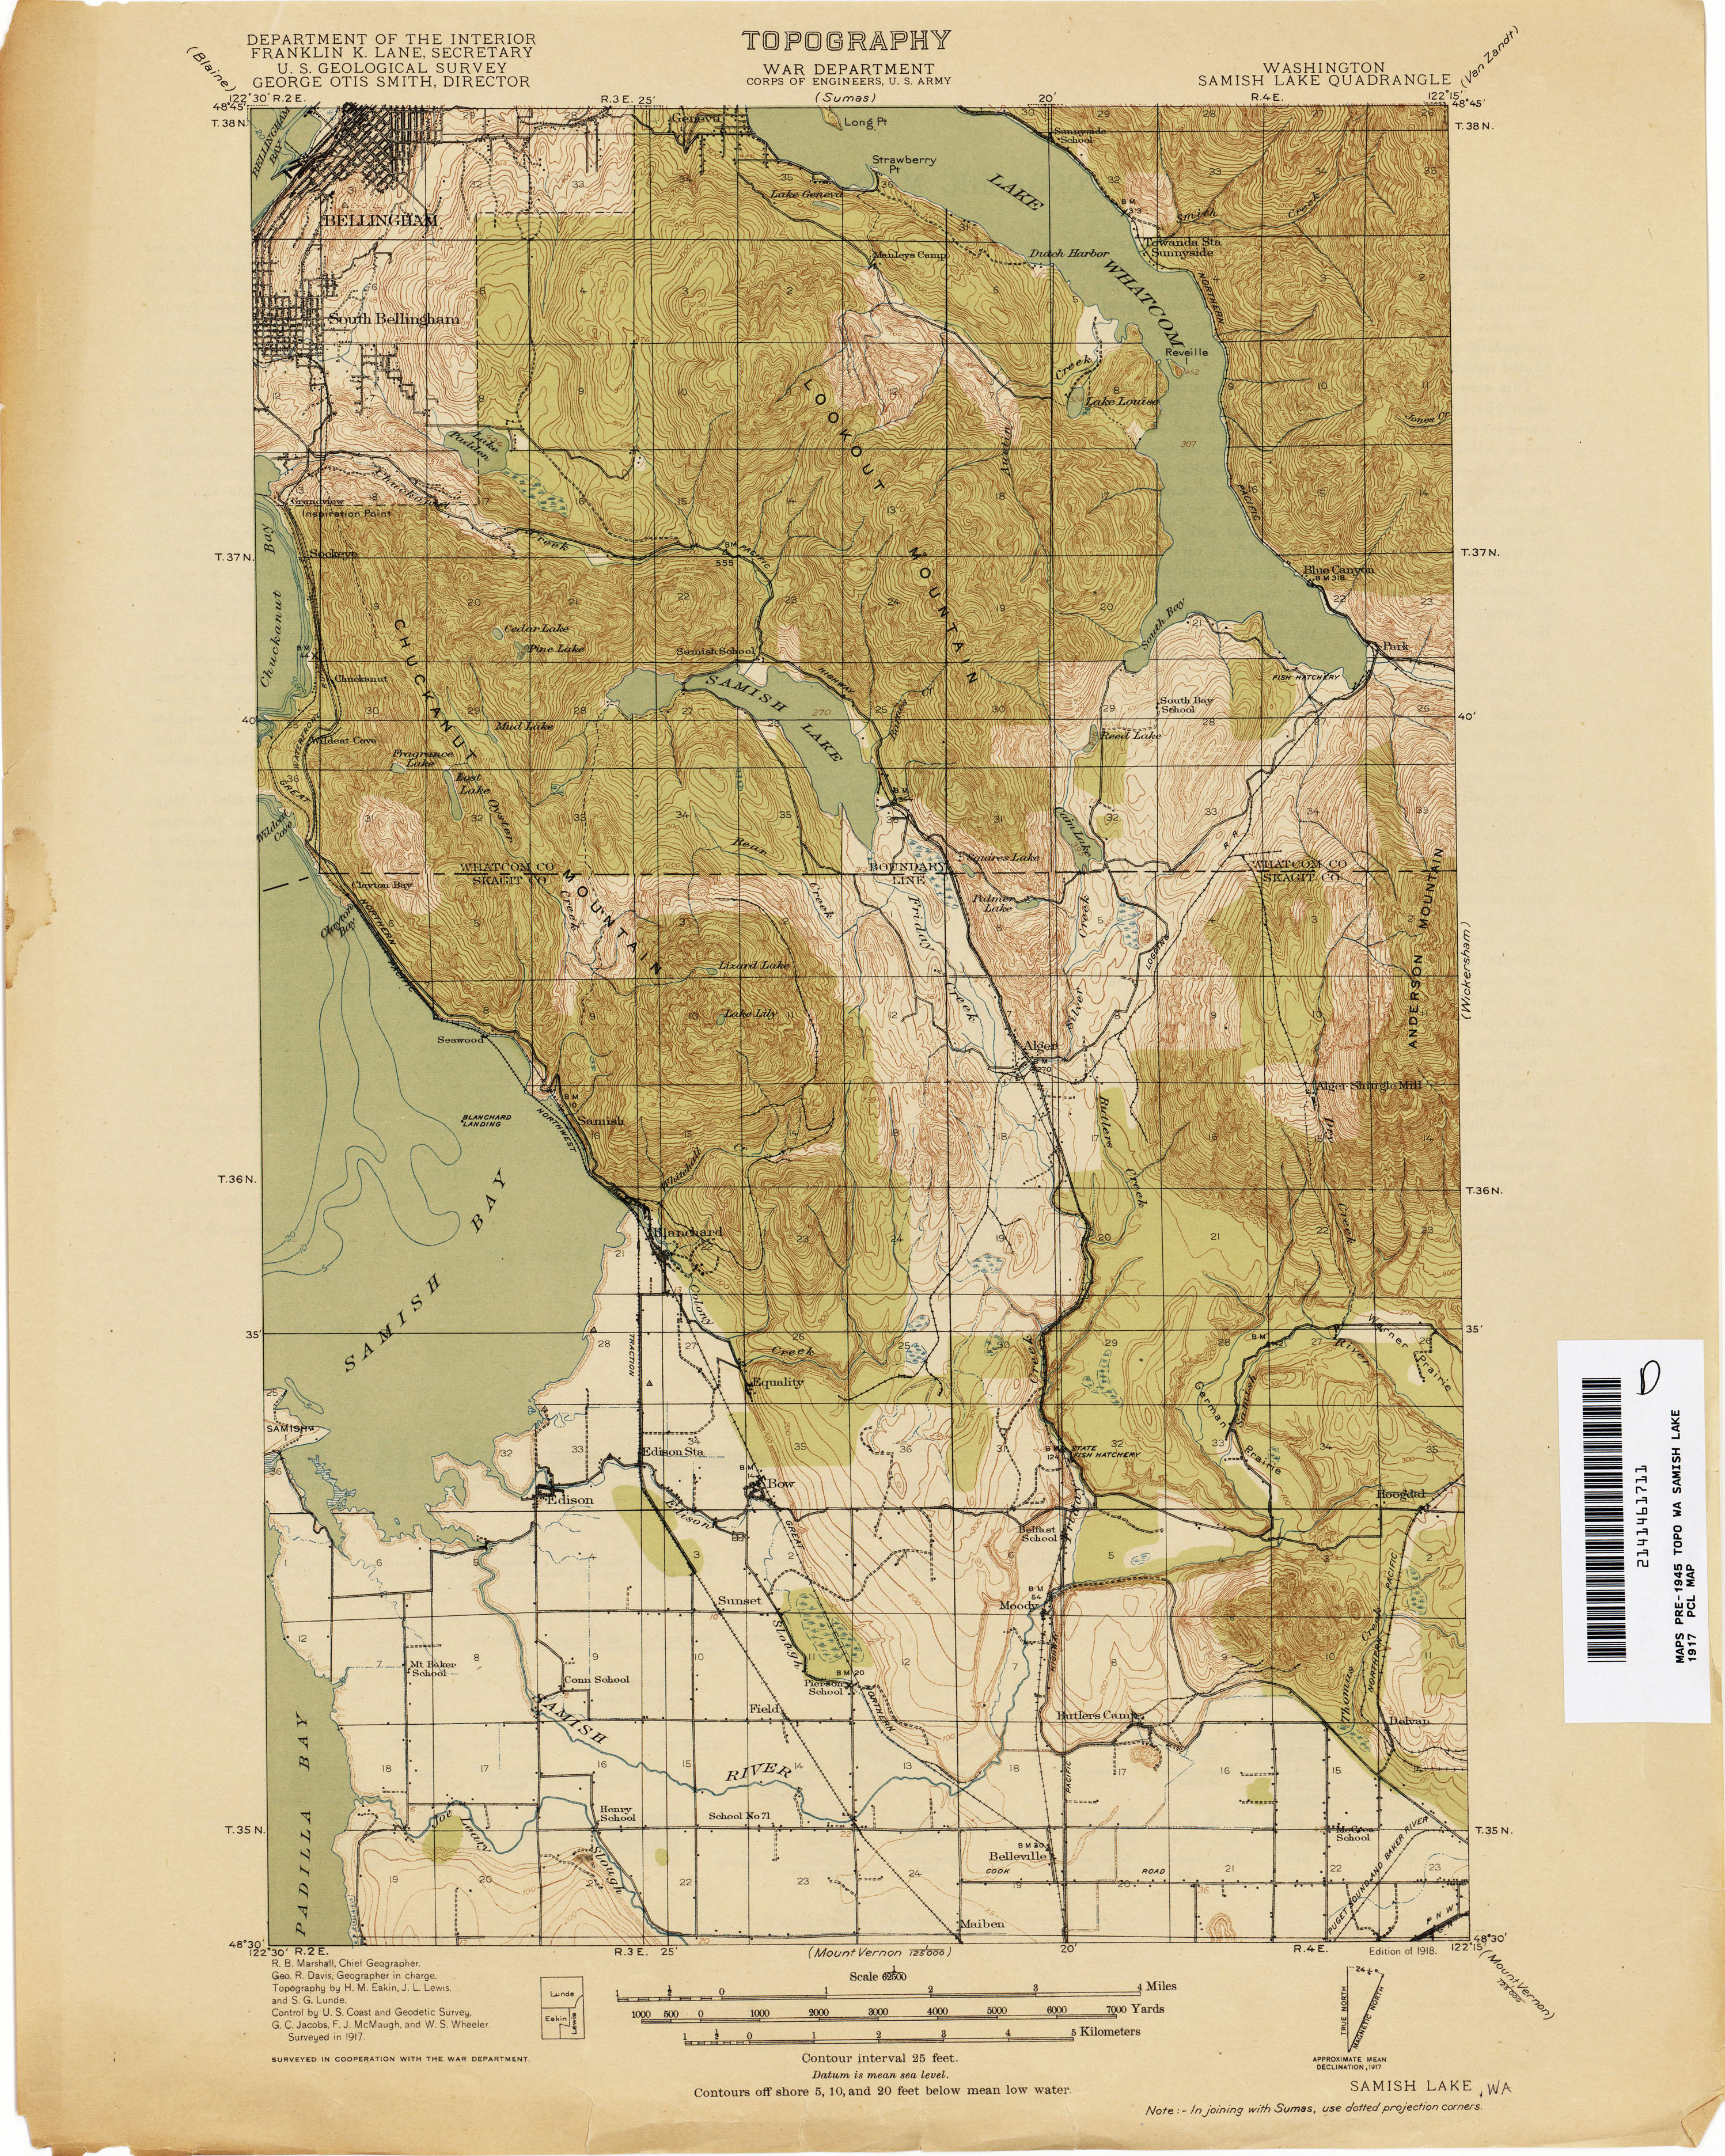 Picture of: Washington Historical Topographic Maps Perry Castaneda Map Collection Ut Library Online